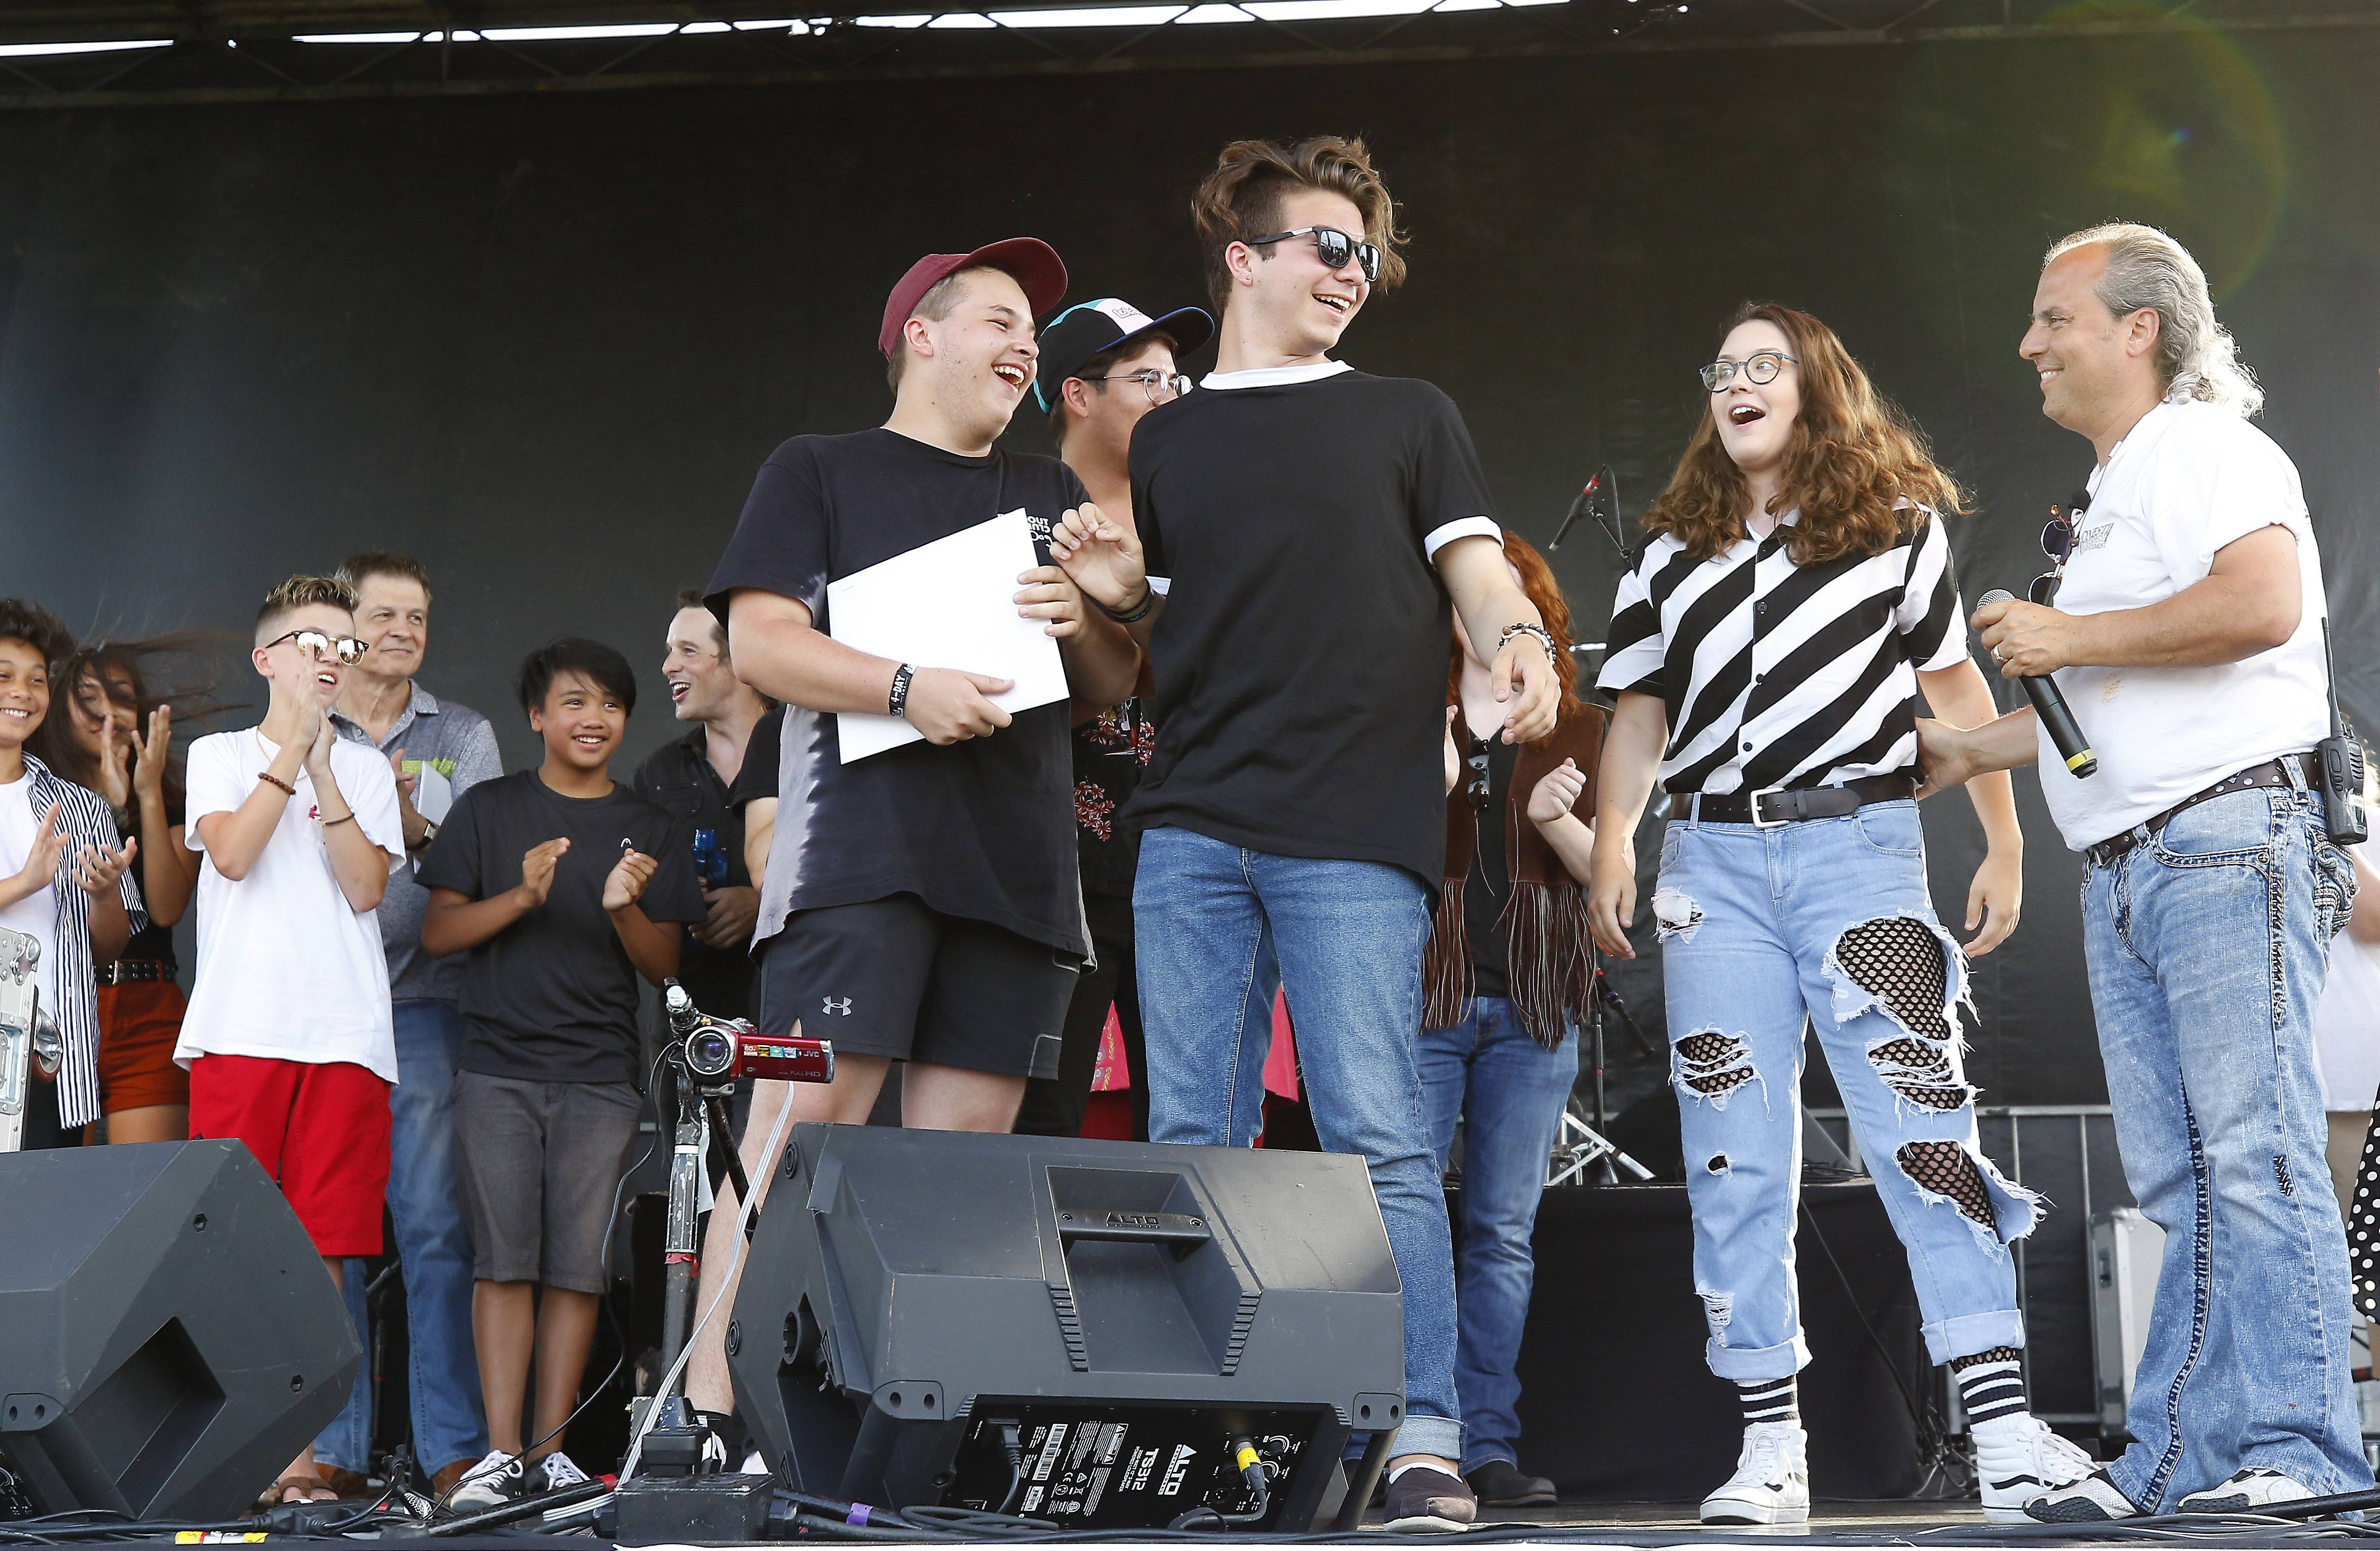 Ron Onesti talks to Seasalt members Jon O'Brien of Richmond, Becky Sargeant of Woodstock, Kayla Seeber of Poplar Grove and Drew Zaremba of Richmond after they were announced as the winner of Suburban Chicago's Got Talent Saturday at Addison's Little Italy Fest-West.